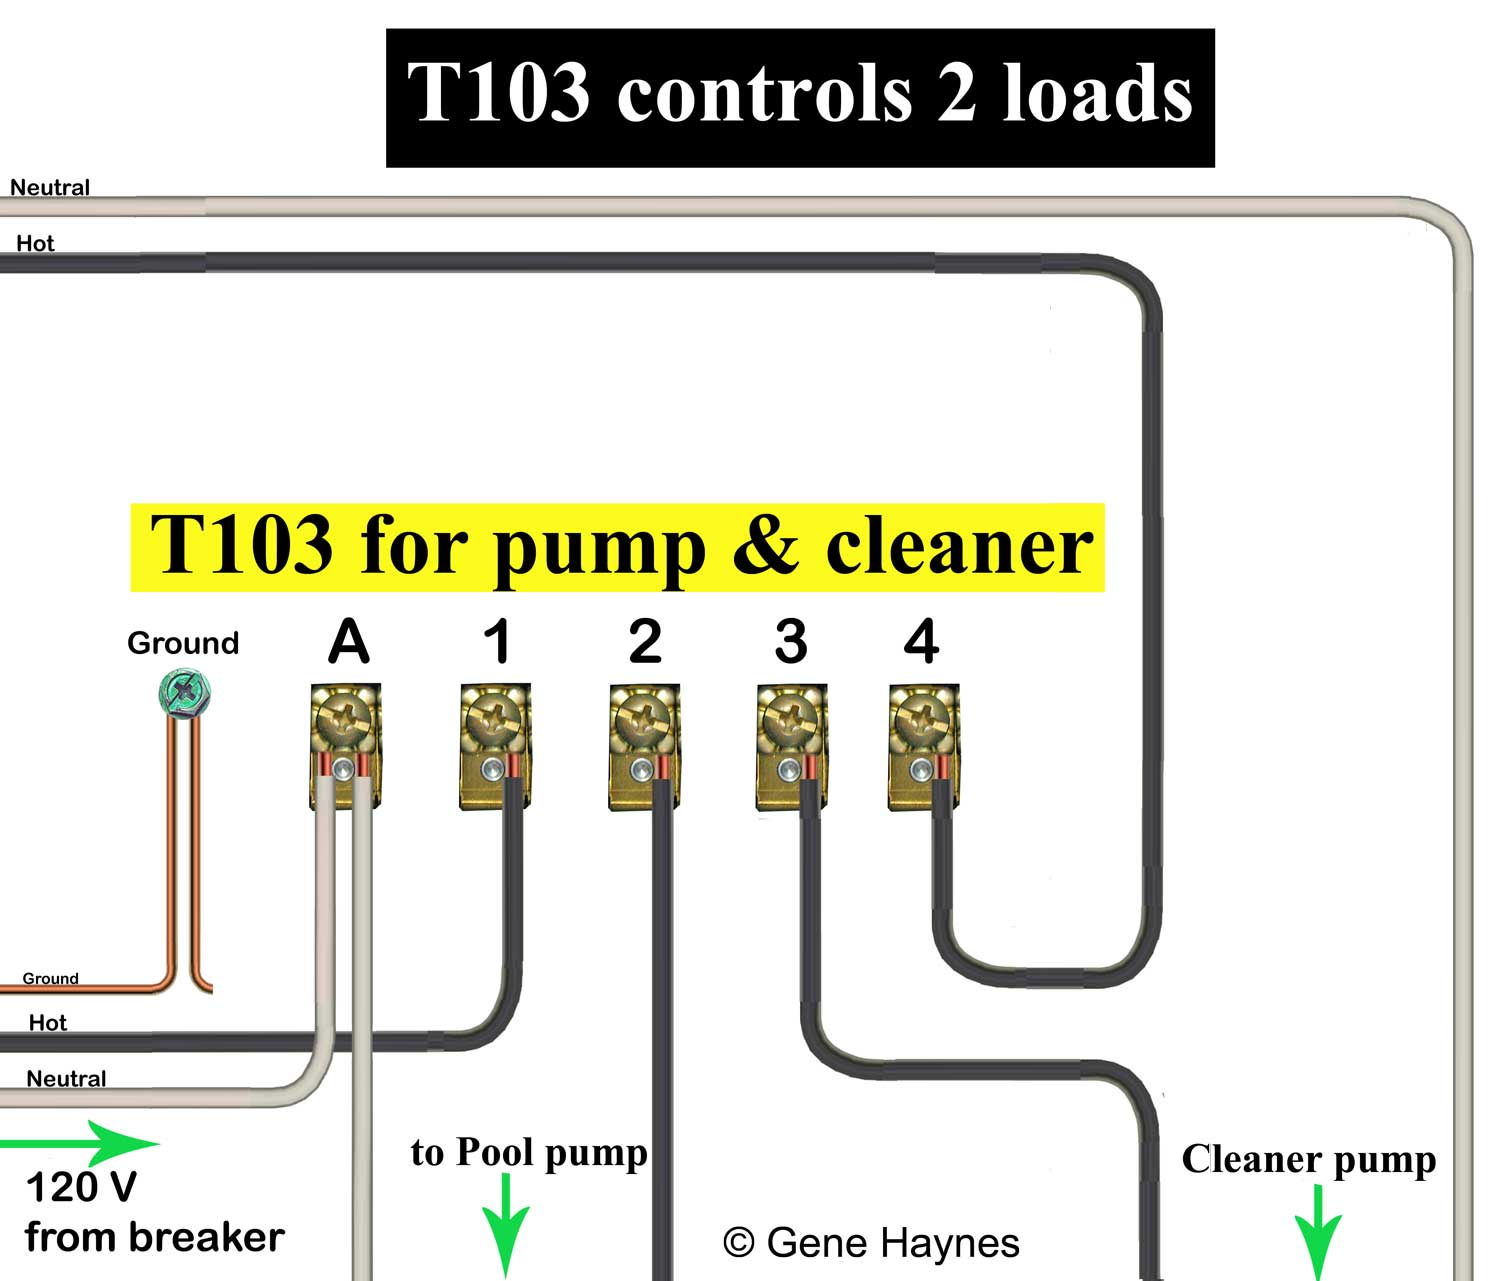 intermatic 240v timer wiring diagram Collection-Intermatic Pool Timer Wiring Diagram Best How to Wire T103 Timer New Intermatic Pool Wiring Diagram 10-r